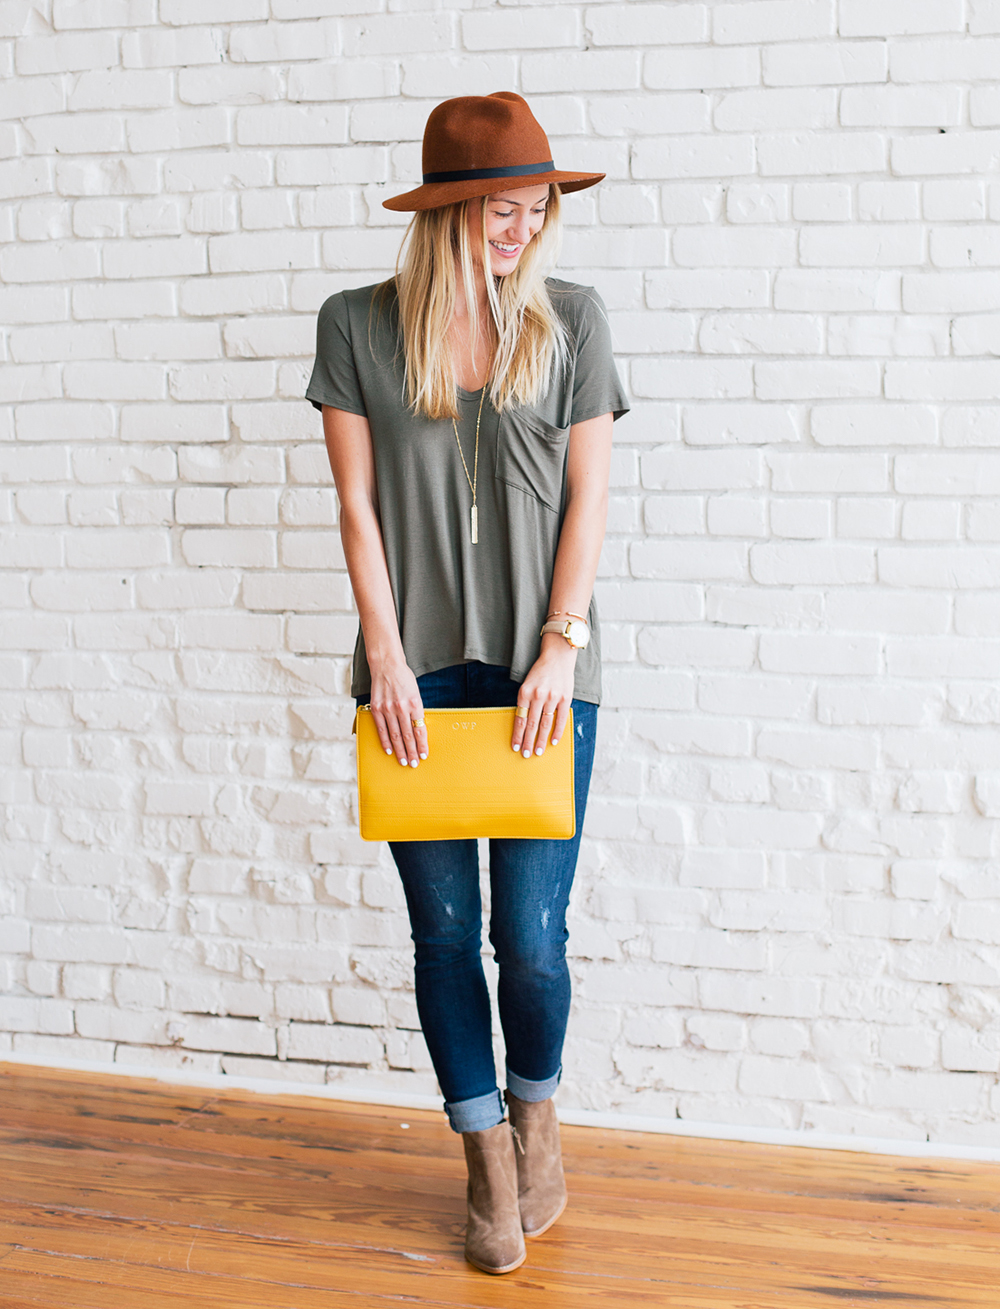 livvyland-blog-olivia-watson-gigi-new-york-saffron-mustard-yellow-clutch-fall-boho-acl-outfit-inspiration-chelsea-laine-francis-photography-2